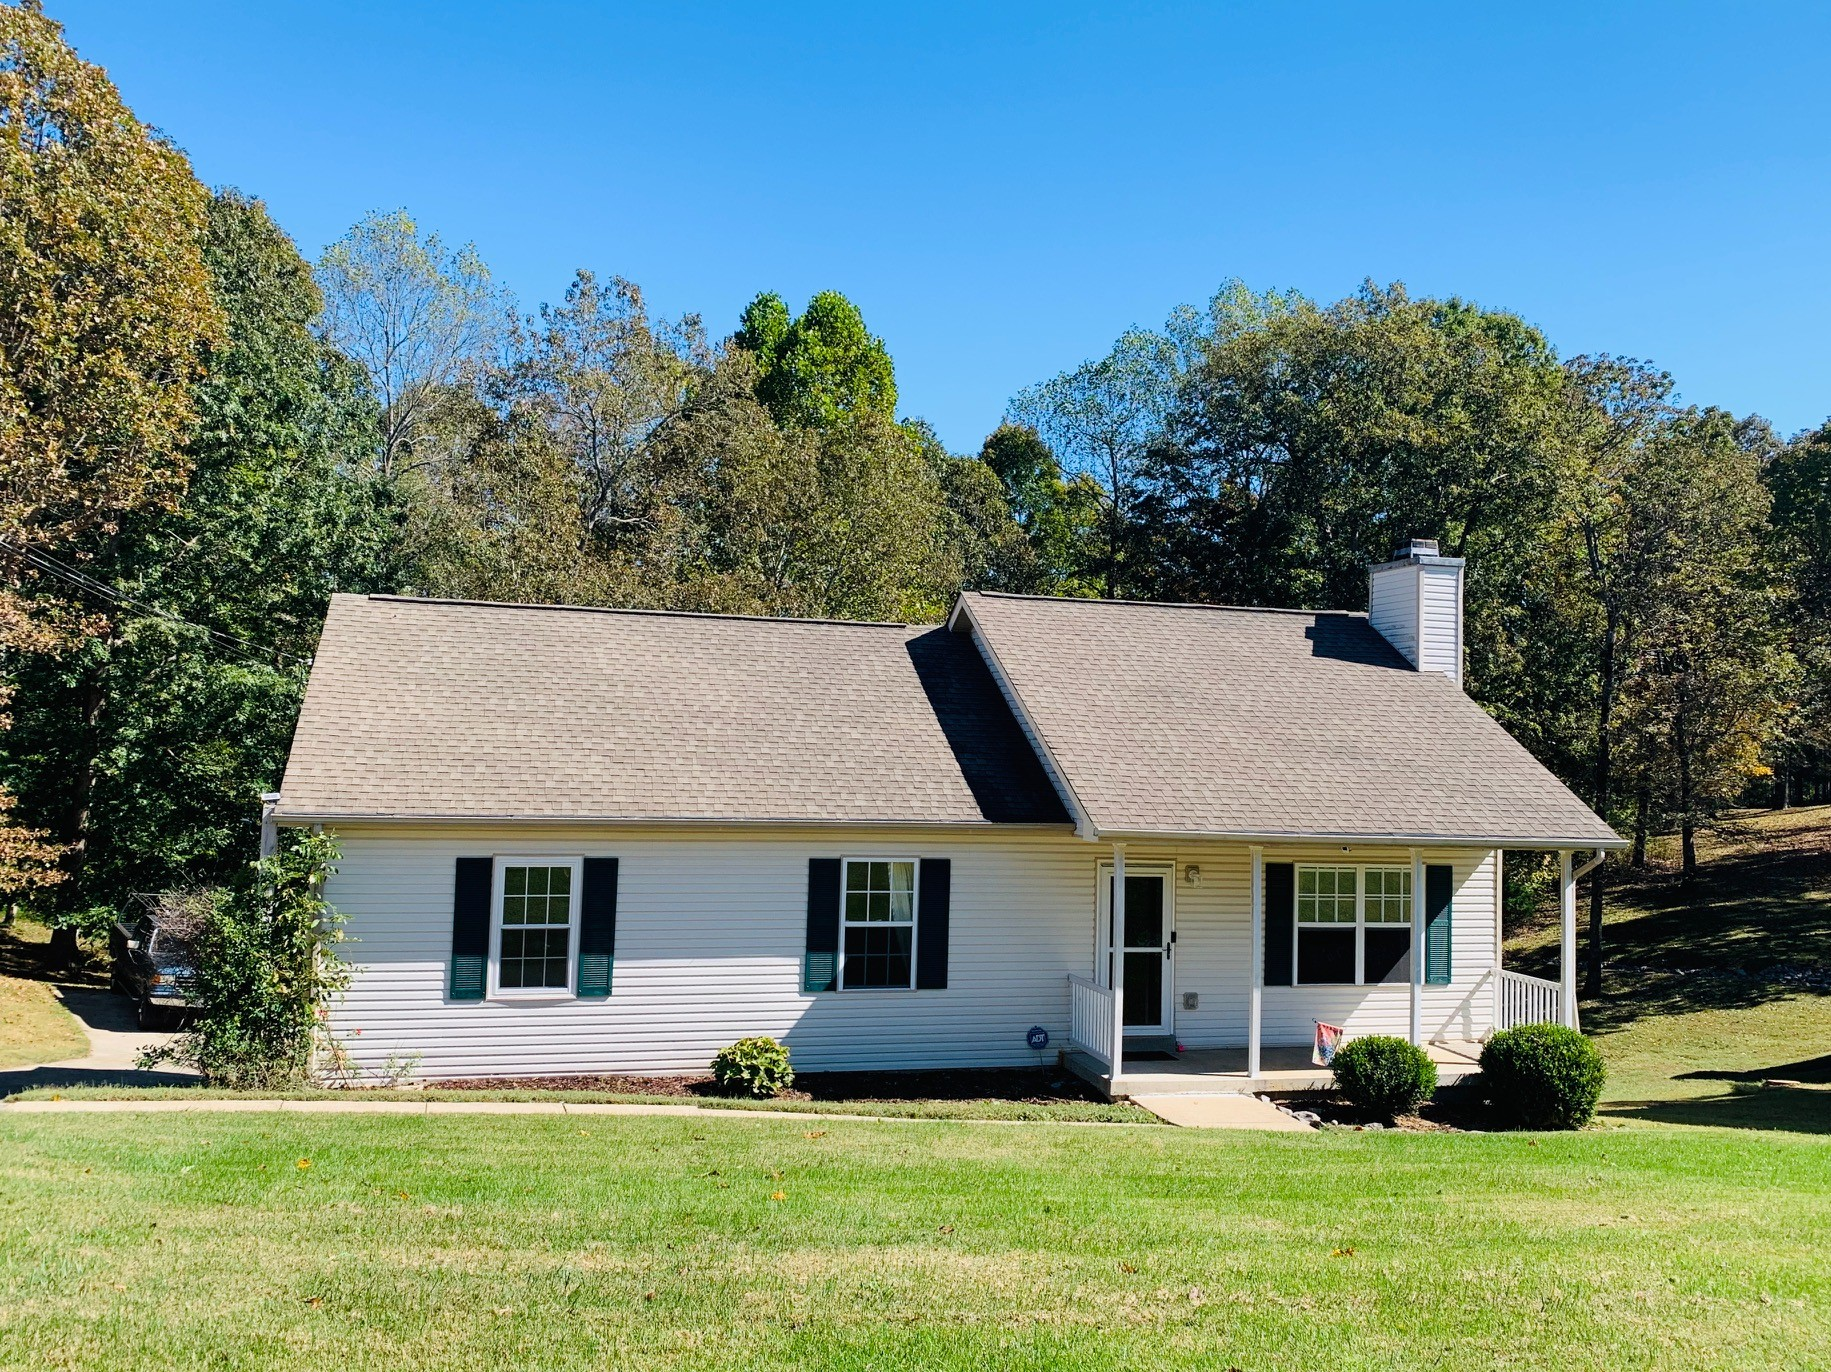 3358 Backridge Rd Property Photo - Woodlawn, TN real estate listing